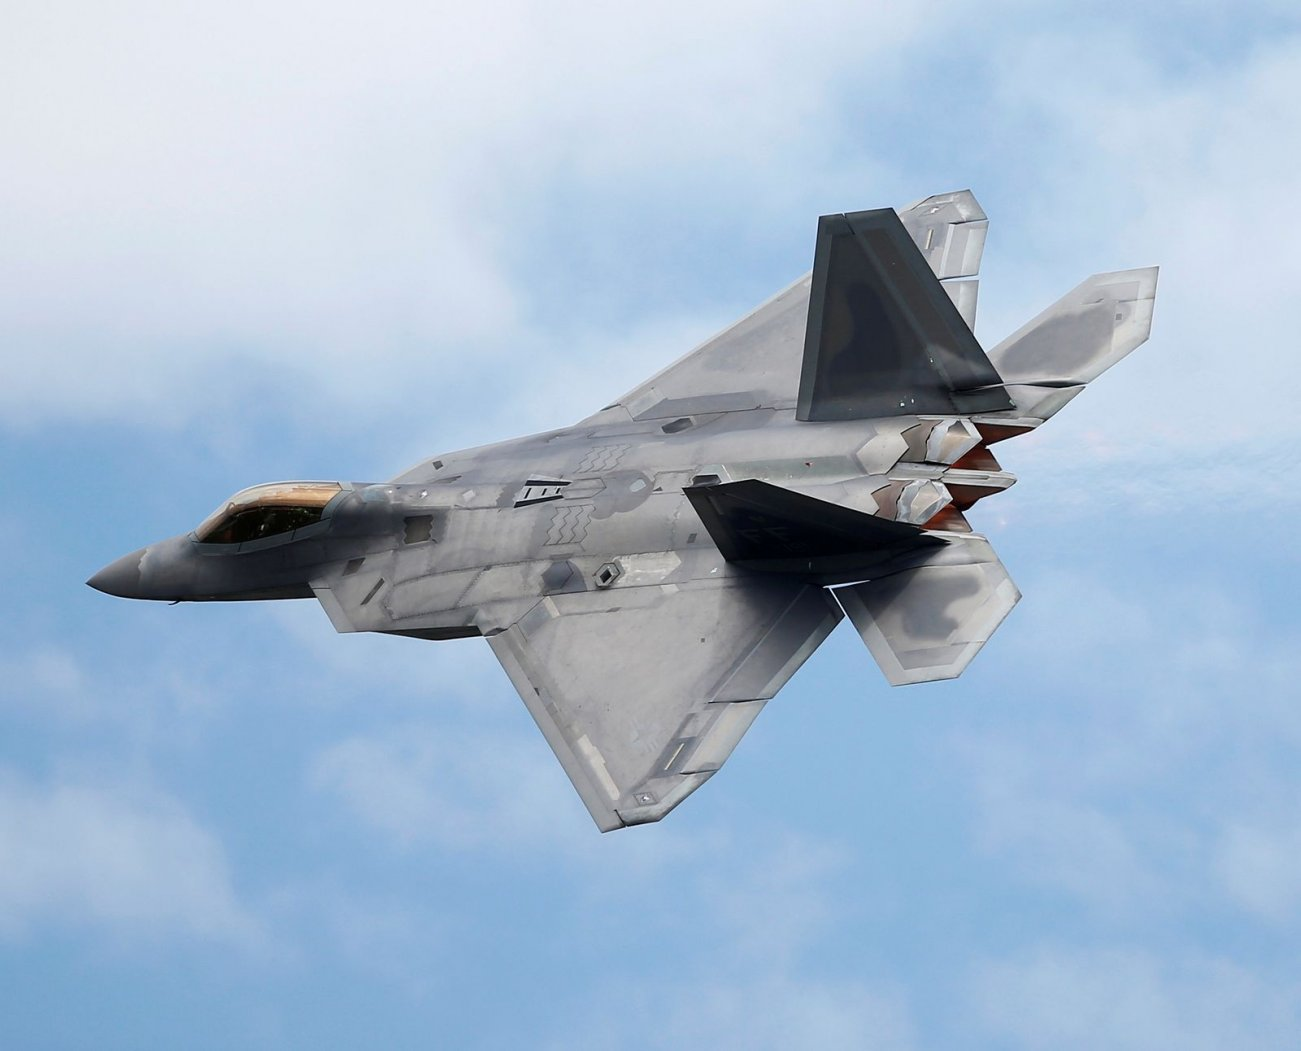 Raptor RIP: Why the U.S. Air Force Only Built 187 Stealth F-22s